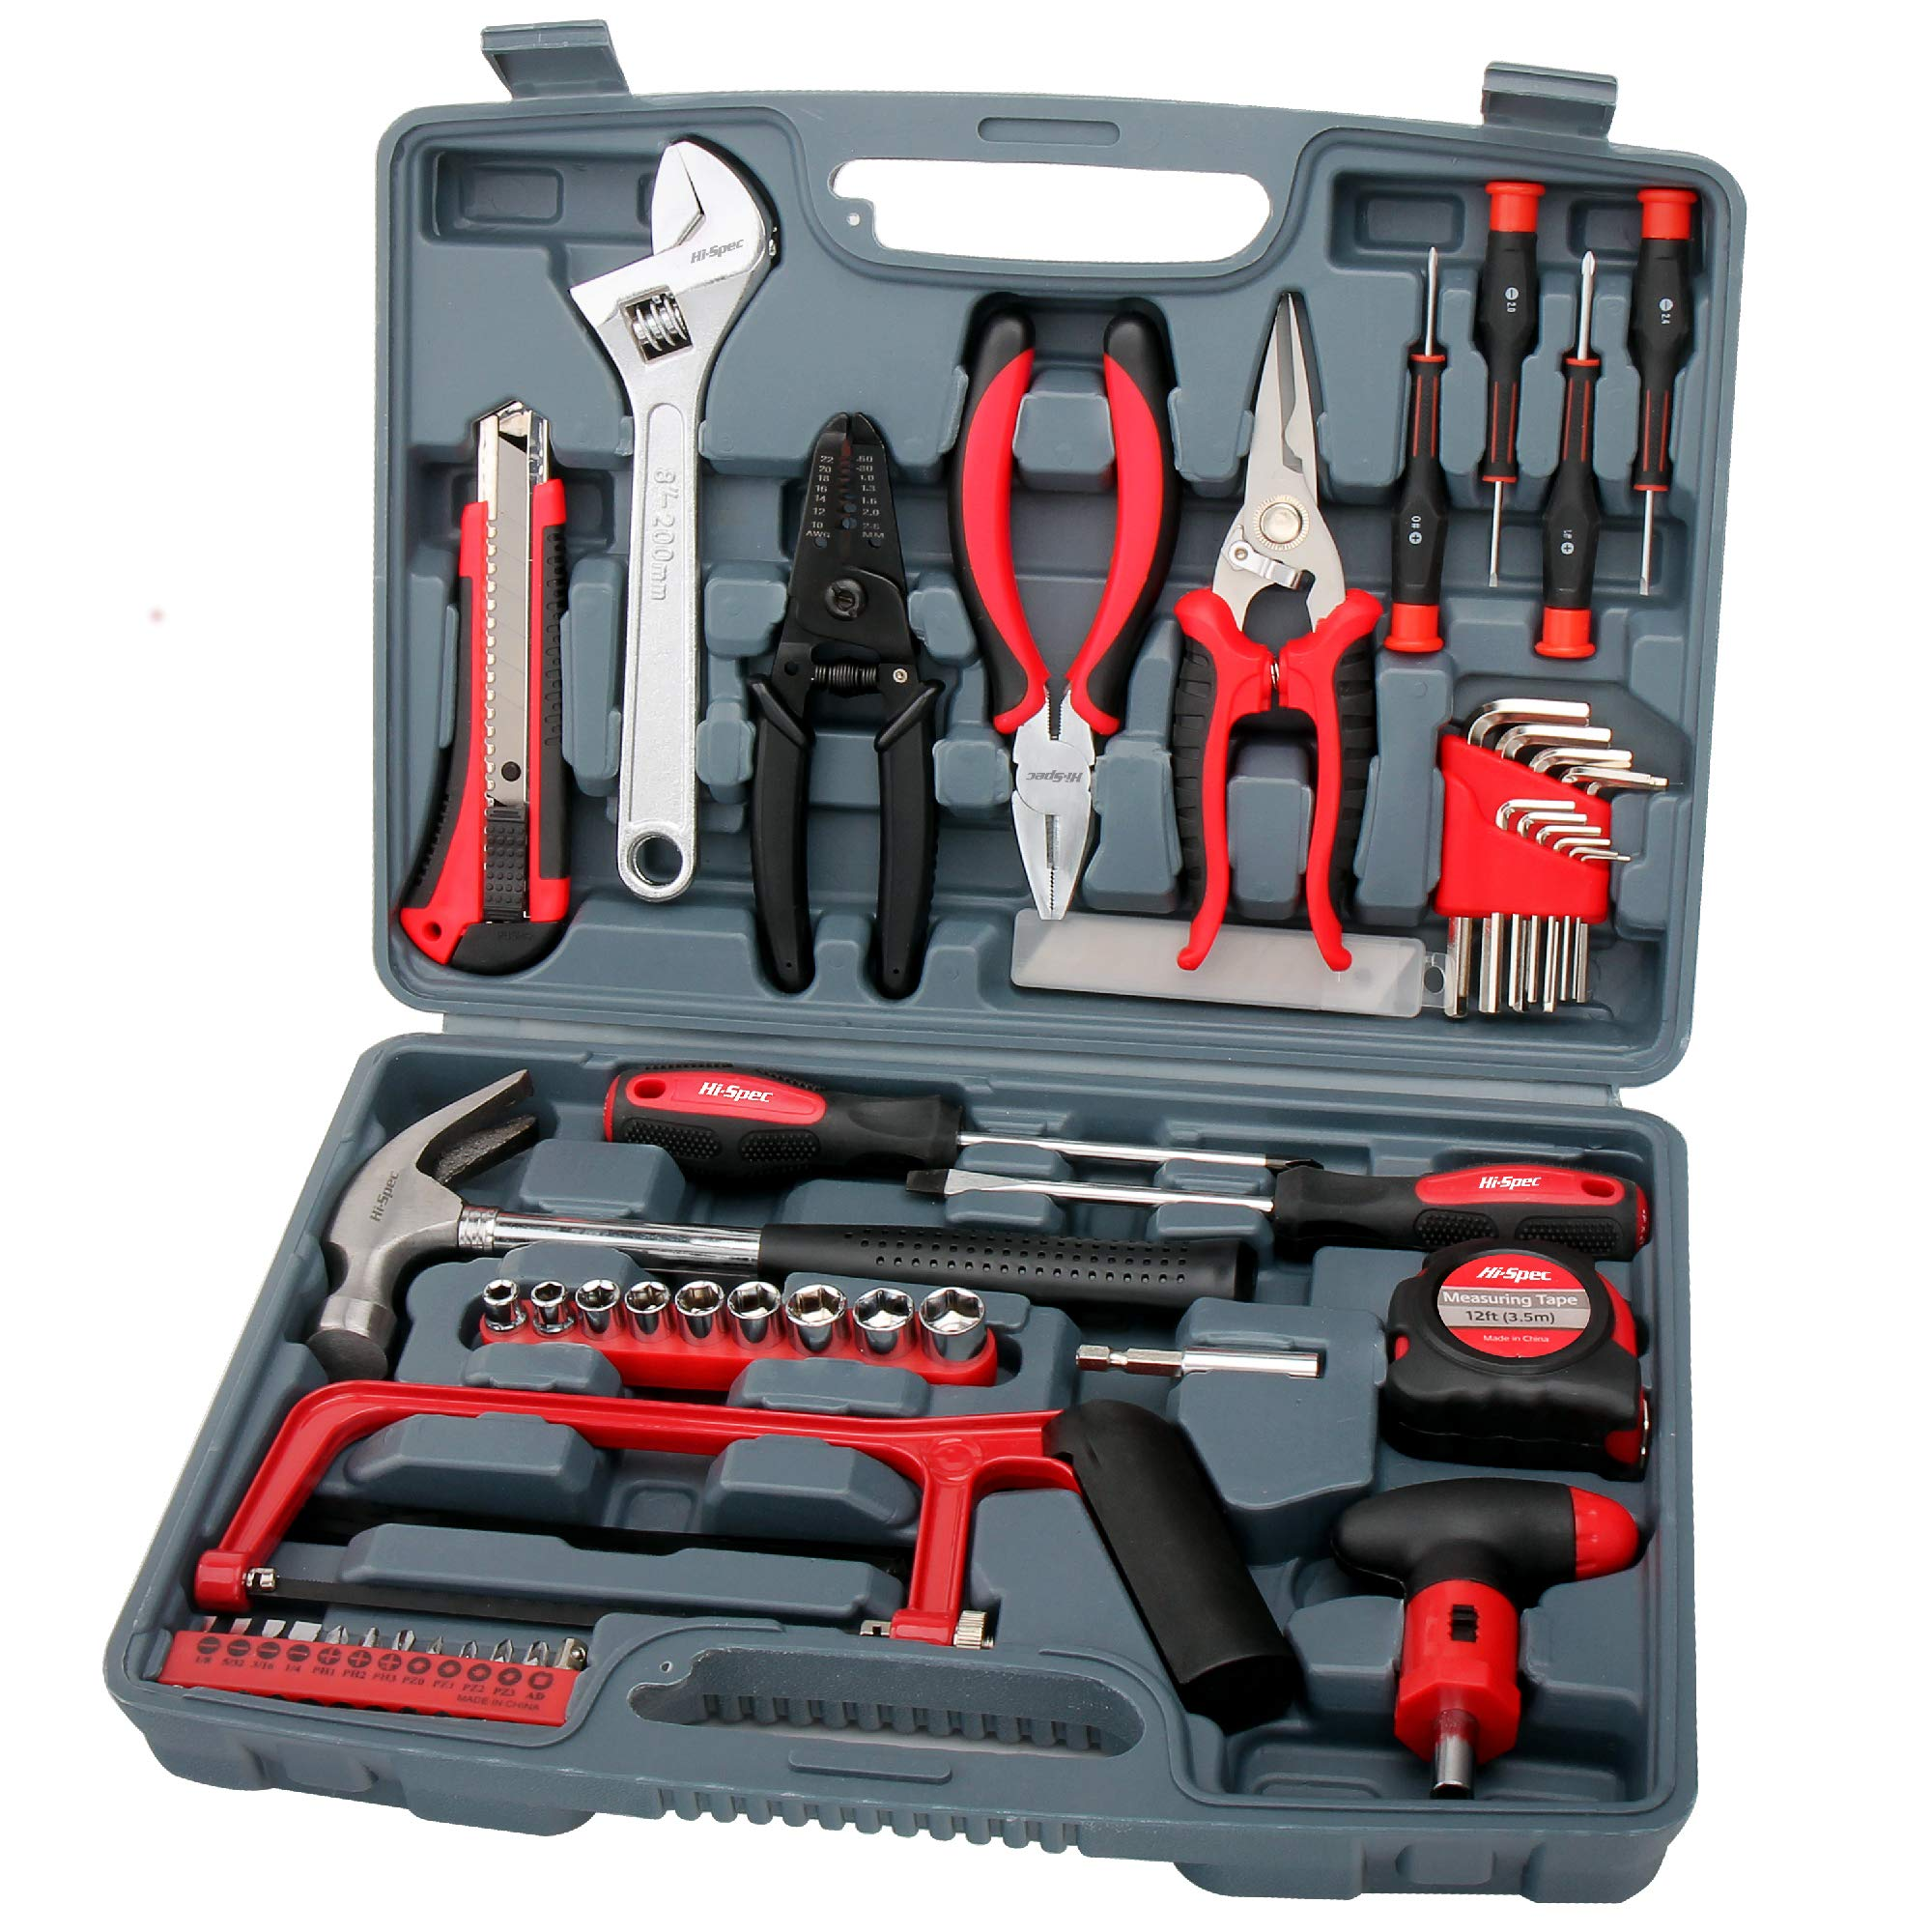 "Hi-Spec 53 Piece Household Tool Kit with Claw Hammer, Hack Saw, Wire Strippers, Crimpers, 1/4"" Drive Sockets, Combination Pliers & Ratcheting Bit Driver - Automotive, Electrical, Woodworking Tool Set"